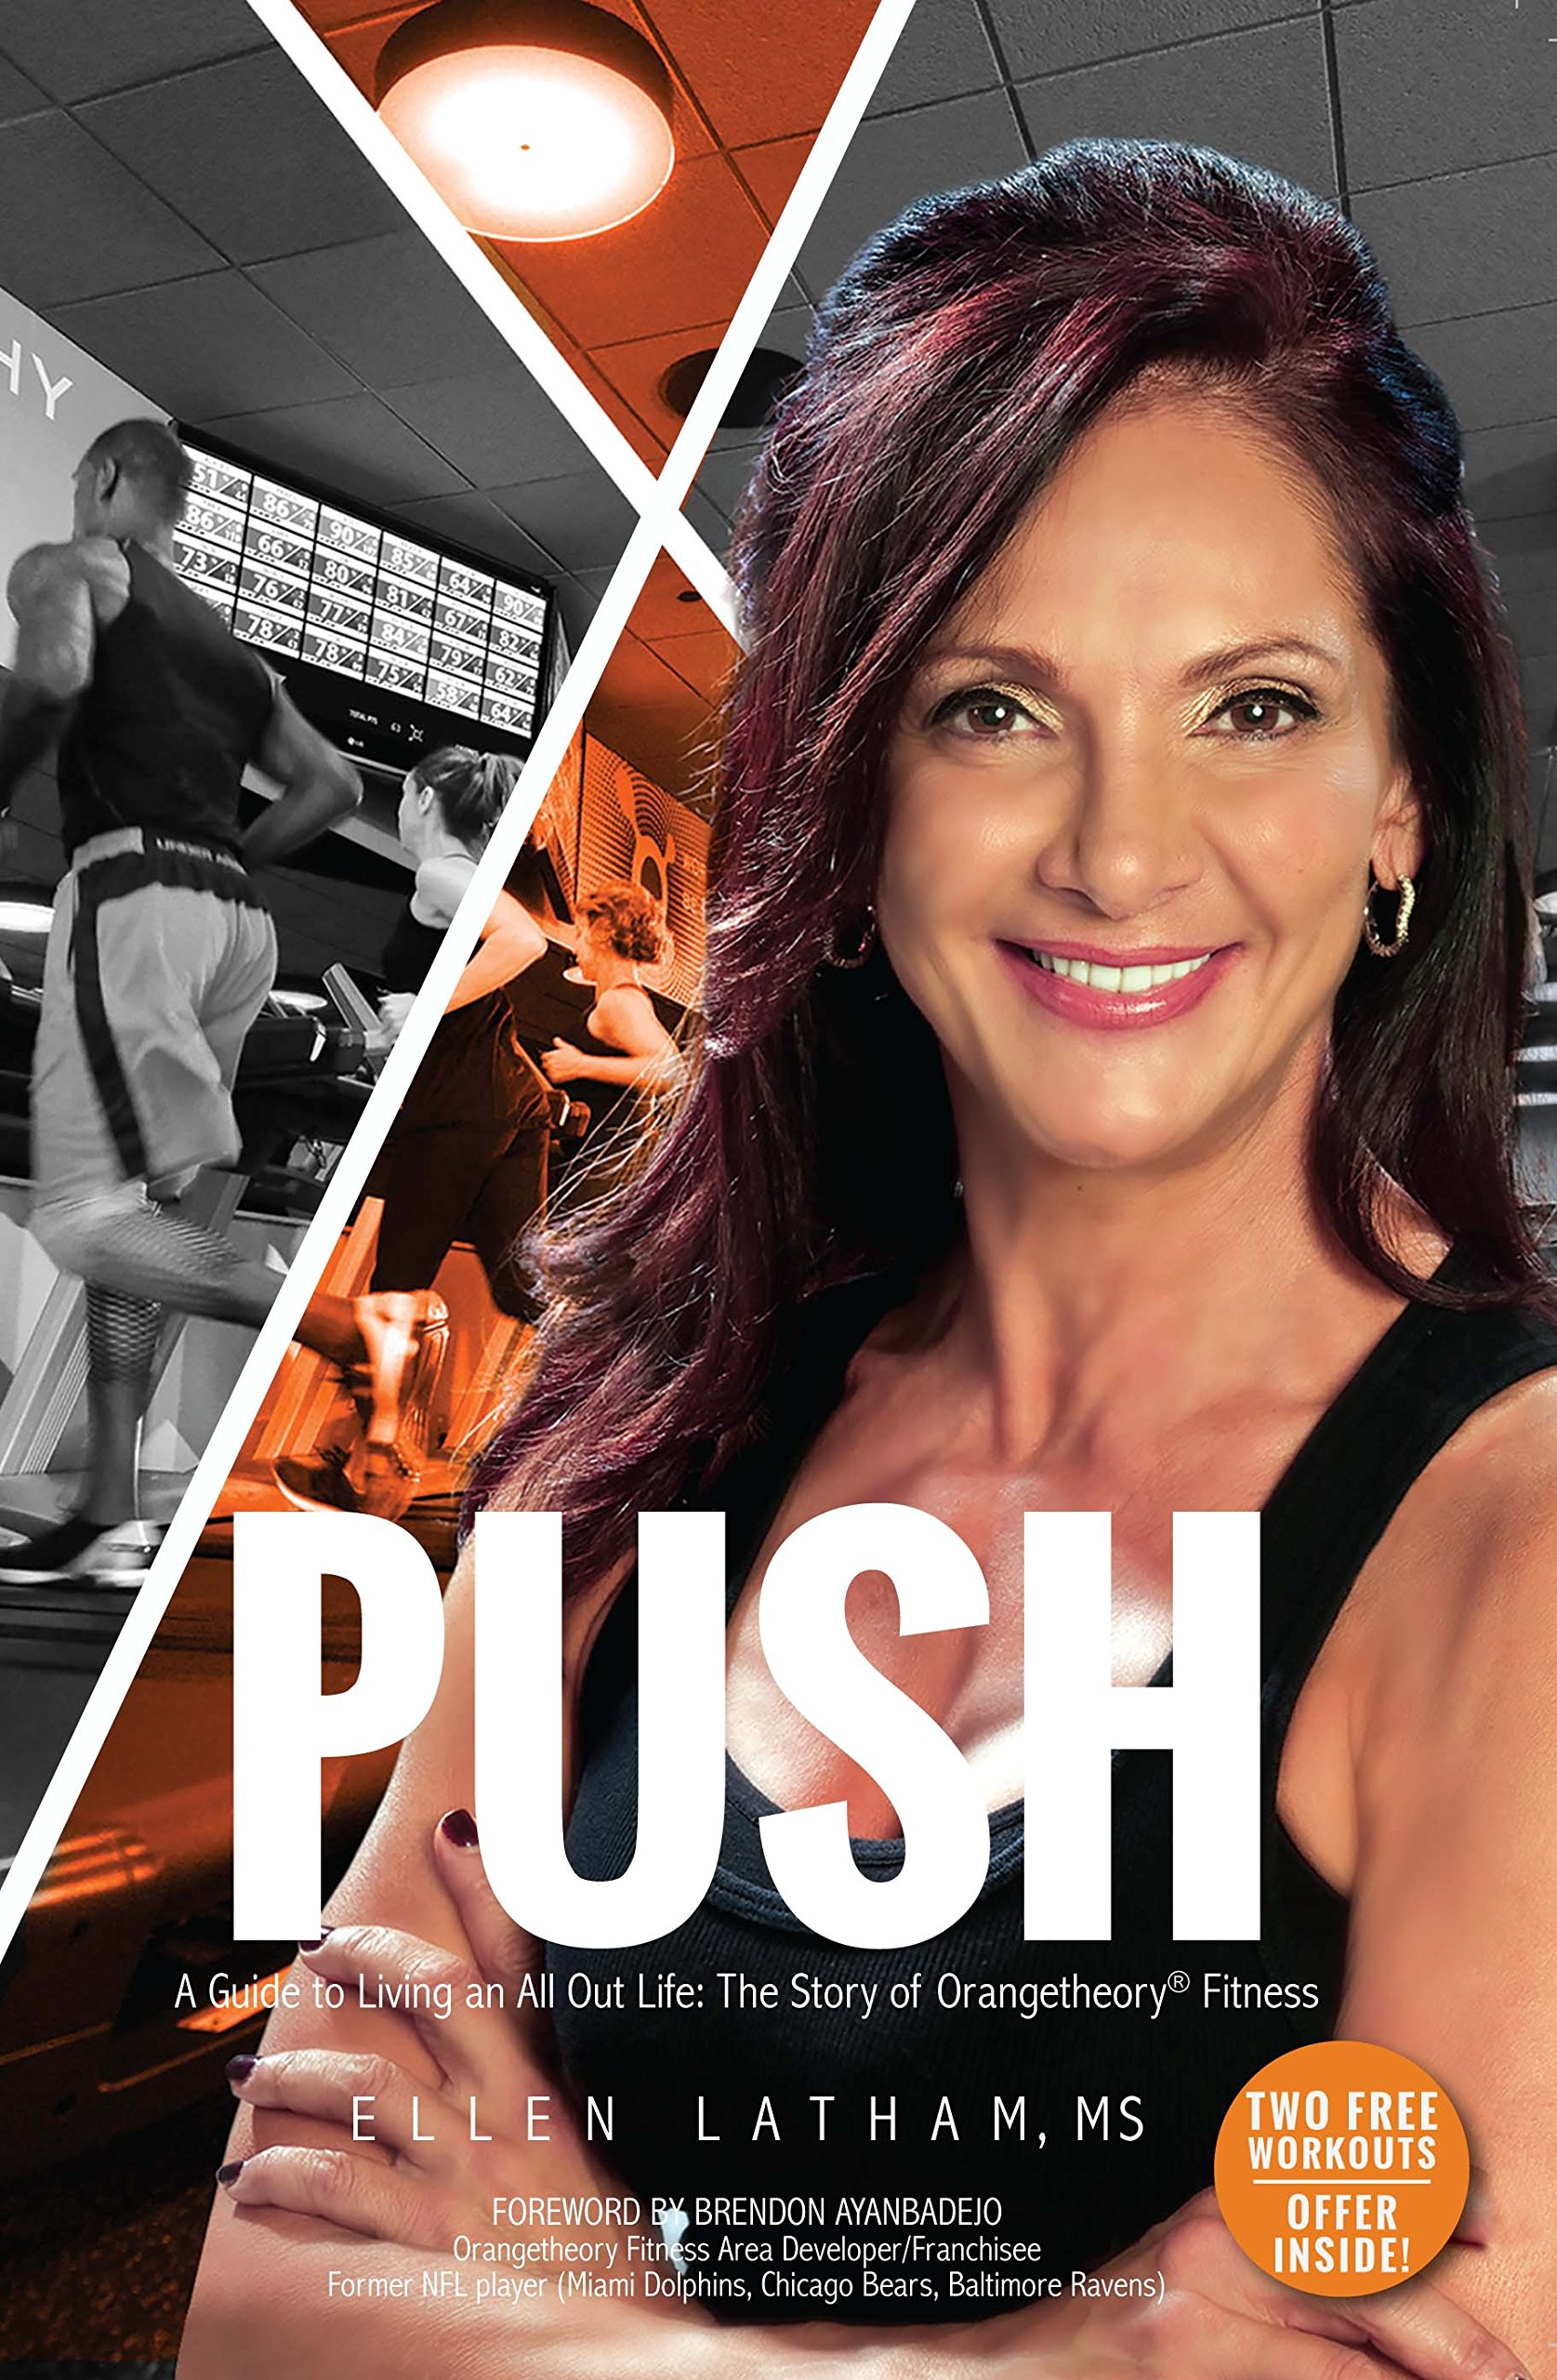 PUSH - A Guide to Living an All Out Life: The Story of Orangetheory Fitness PDF